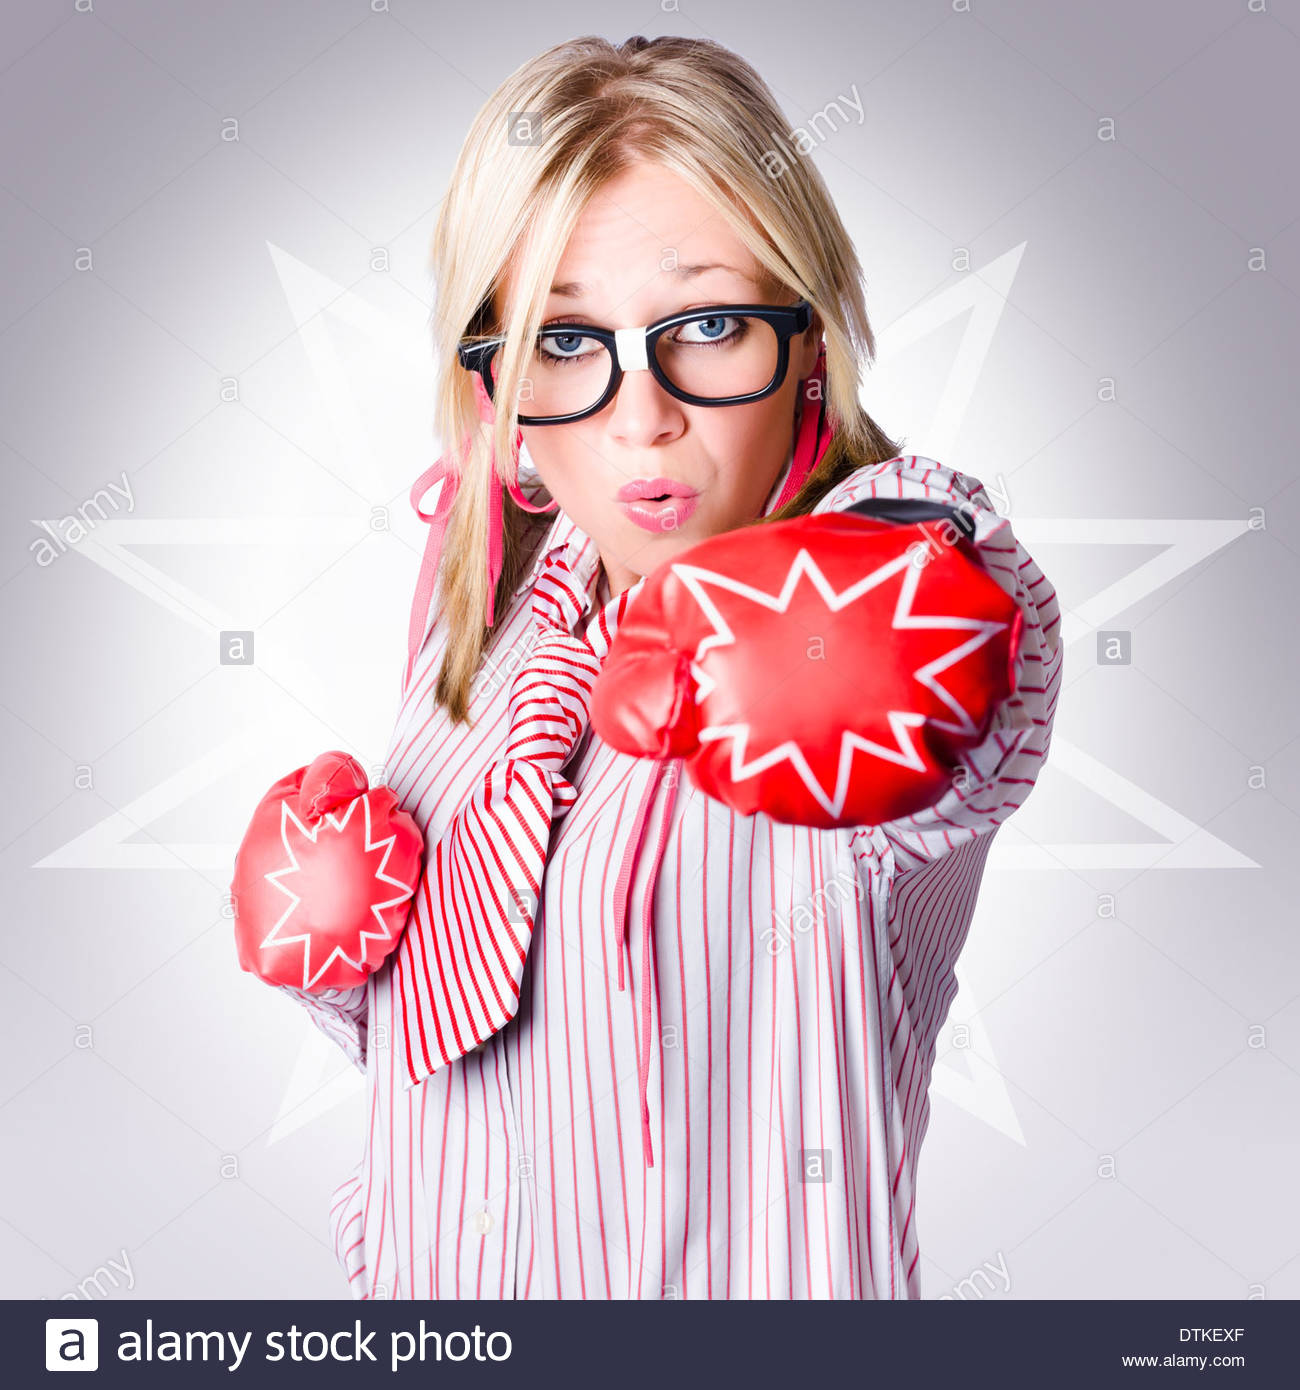 Tough business woman packing a punch of strength and power wearing boxing gloves on starburst background - Stock Image